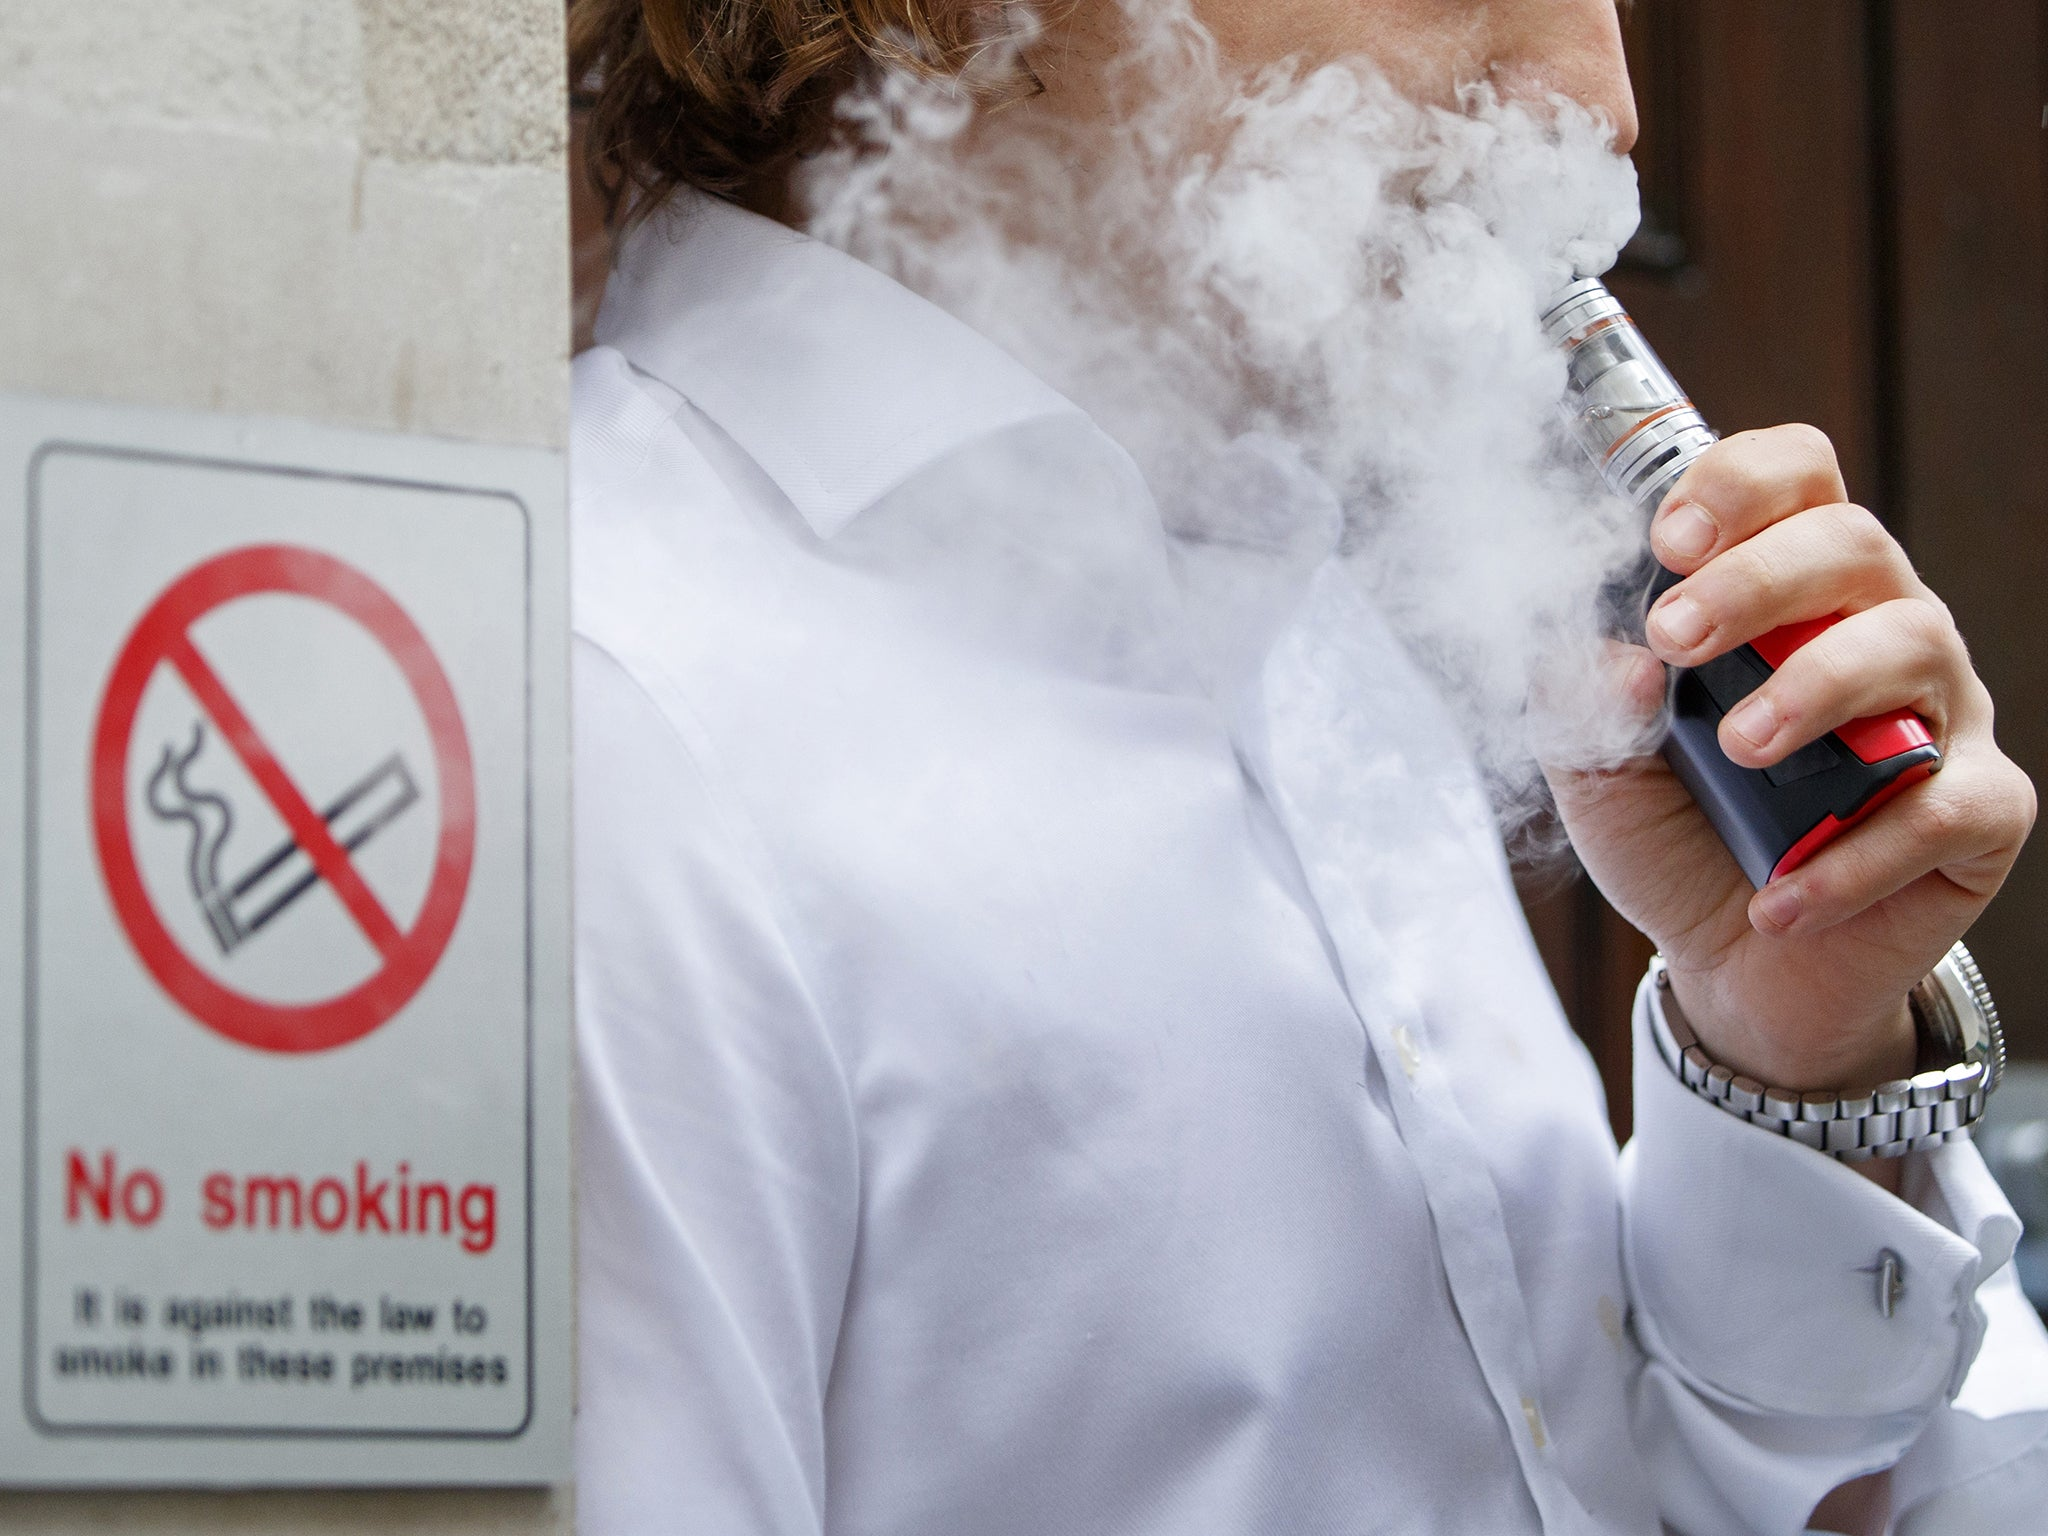 Vaping disables the lung's cleaning systems and could cause chronic